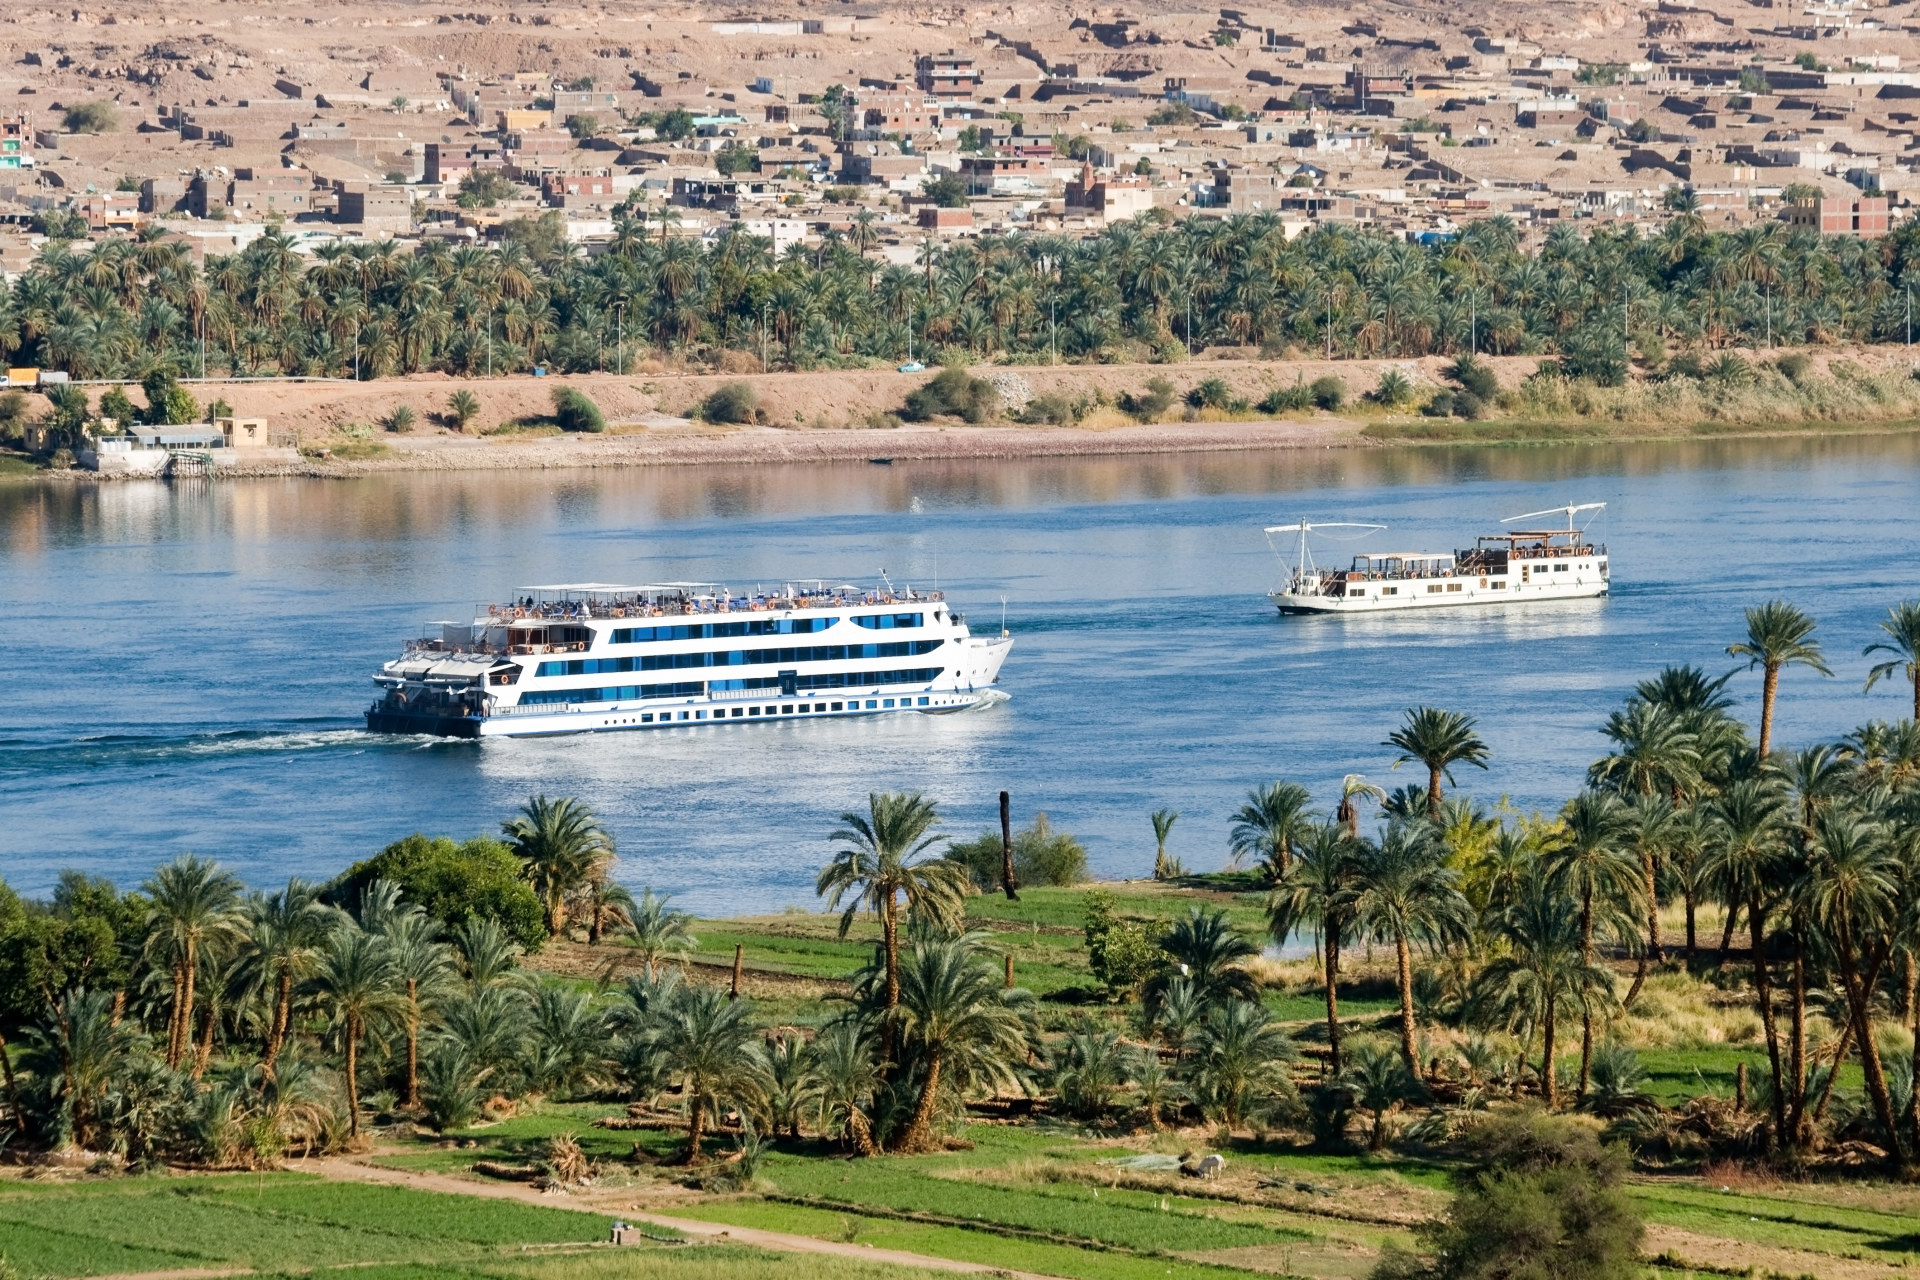 Nile Cruise Luxur Aswan